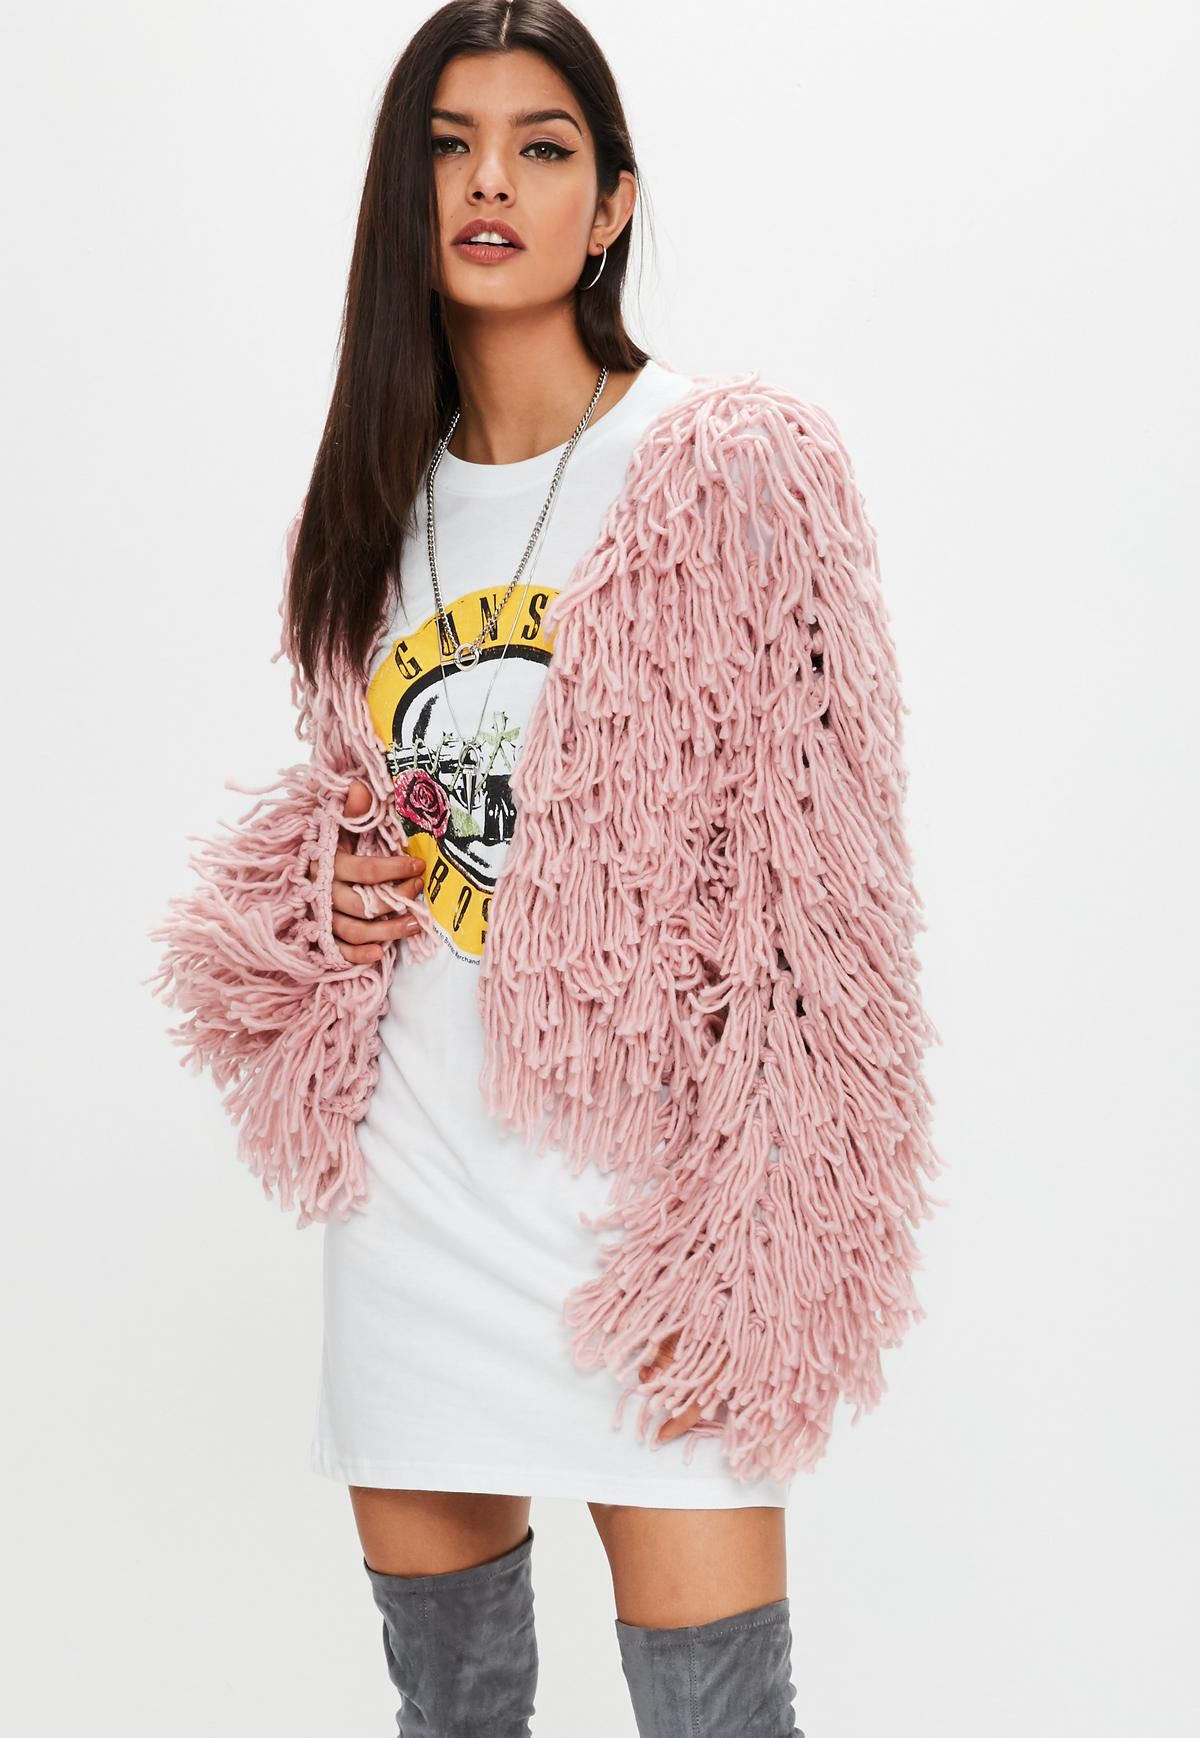 MISSGUIDED PREMIUM SHAGGY KNITTED CARDIGAN (2ND PHOTO IS ACTUAL COLOUR) - SIZE 10